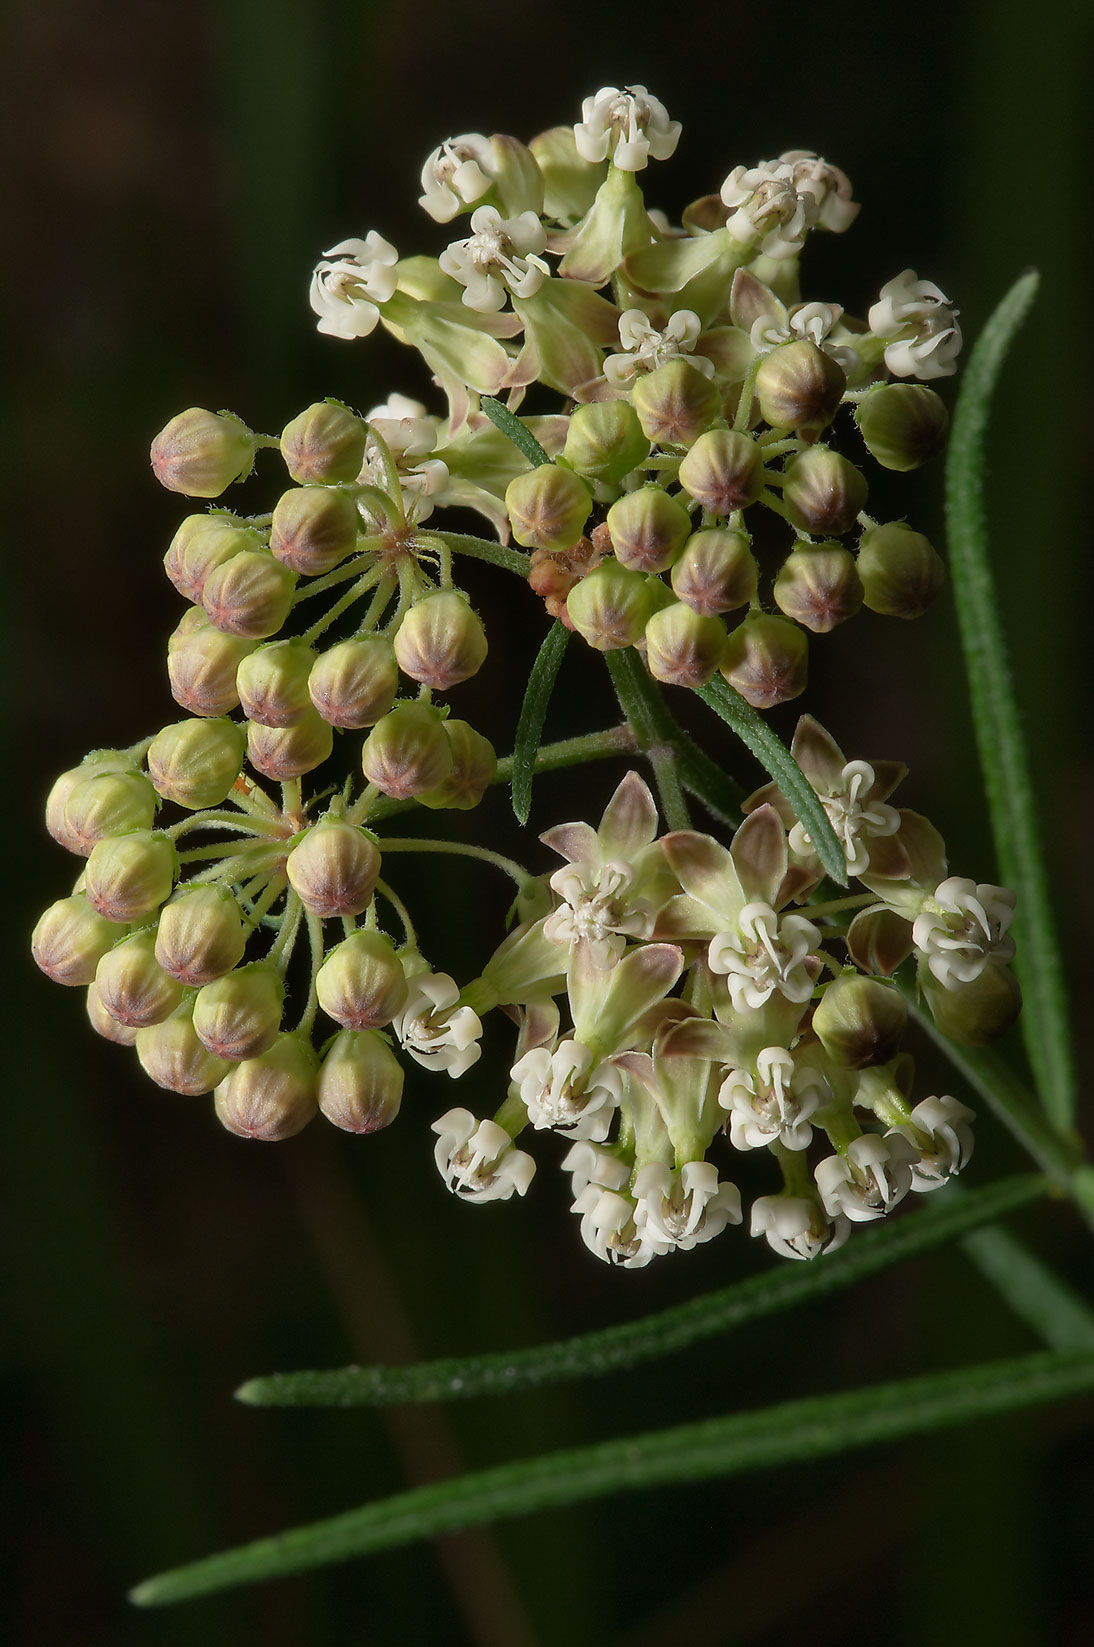 Whorled milkweed (Asclepias verticillata ) in...National Forest. Richards, Texas